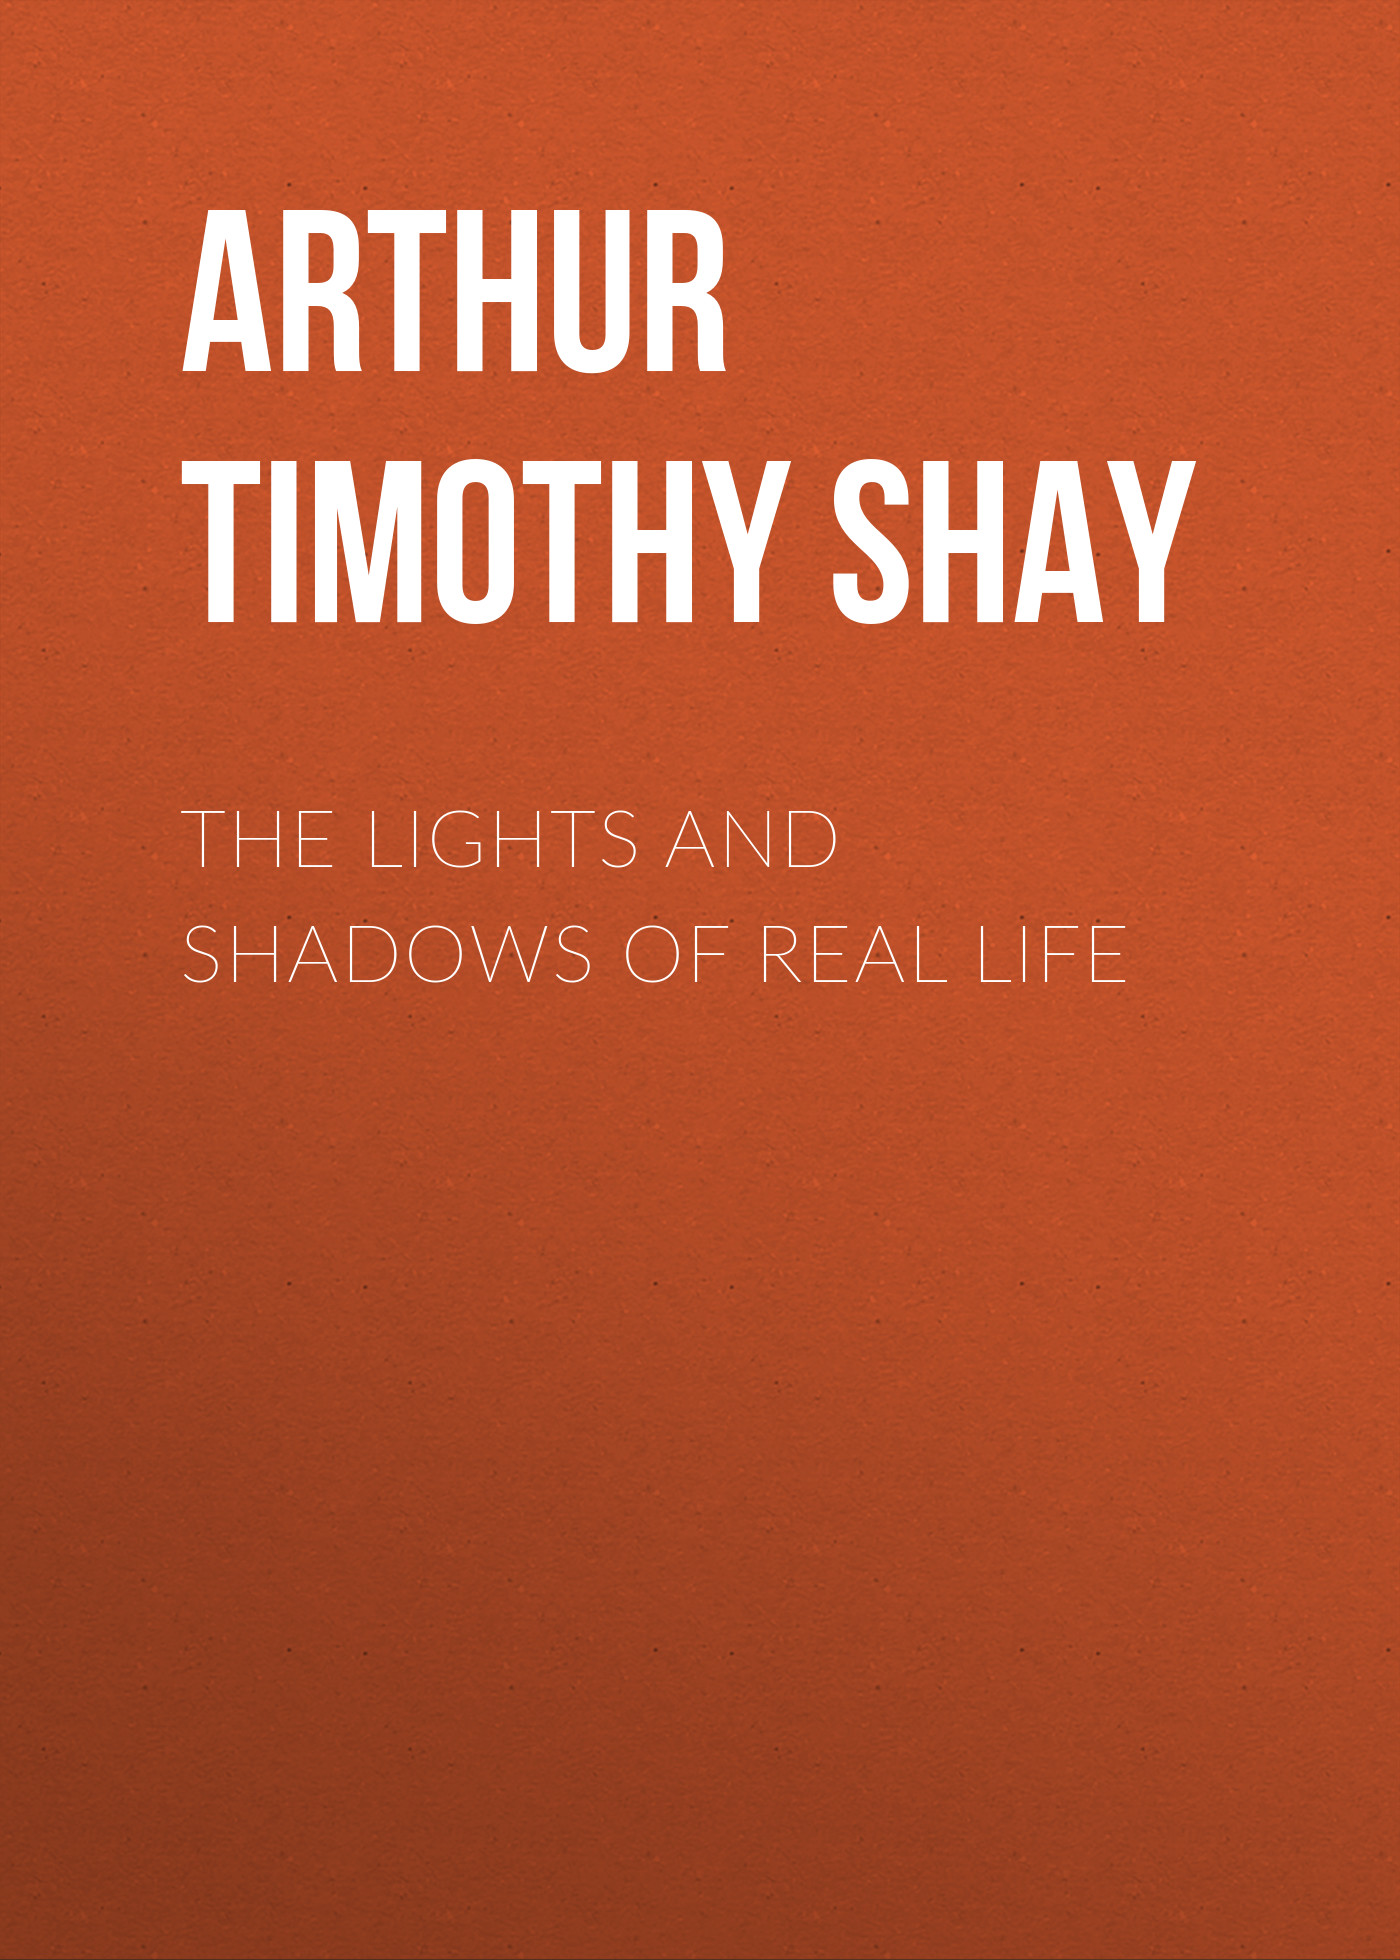 Arthur Timothy Shay The Lights and Shadows of Real Life octavius winslow the lights and shadows of spiritual life